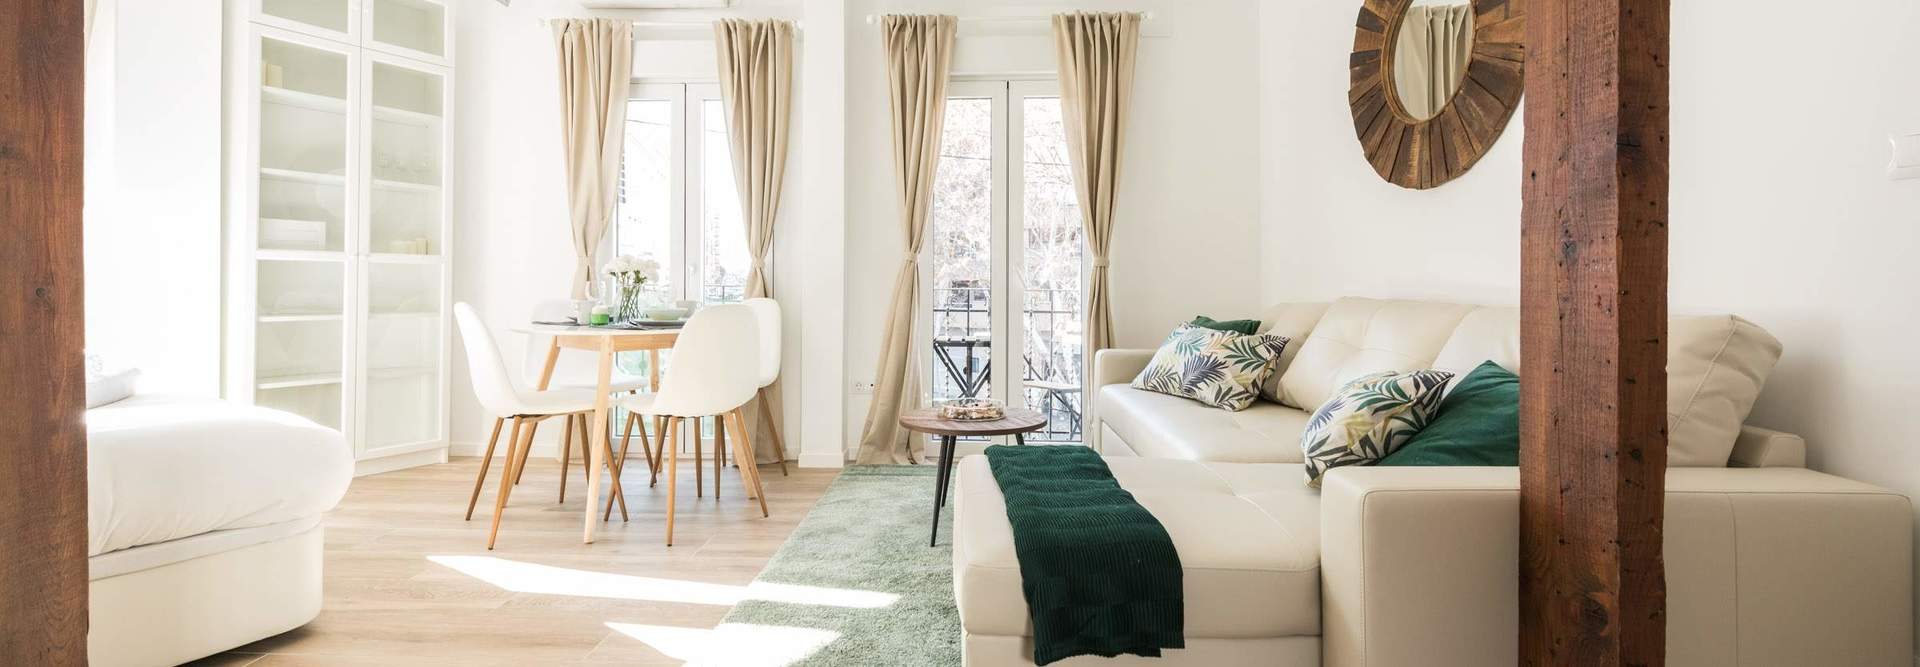 Home alquiler apartamento madrid centro mad4rent  37